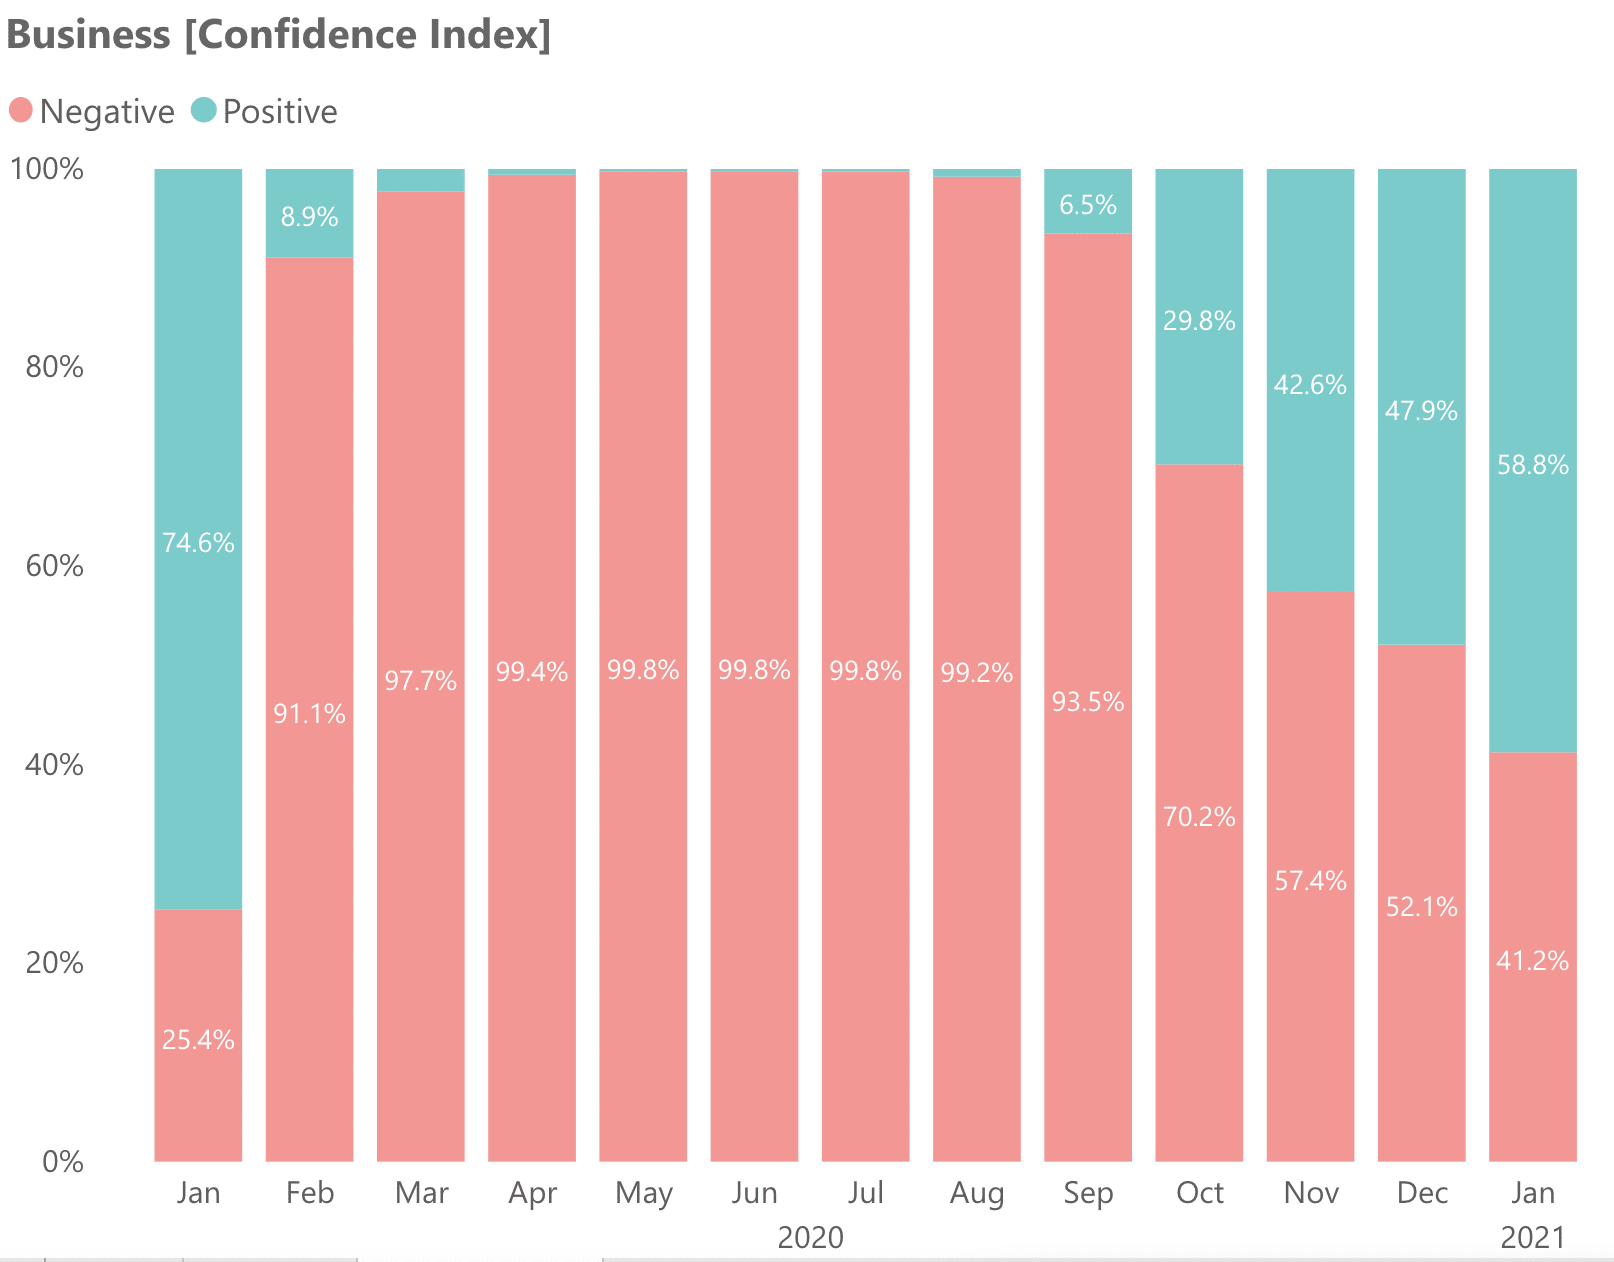 Business Confidence Index in the UAE